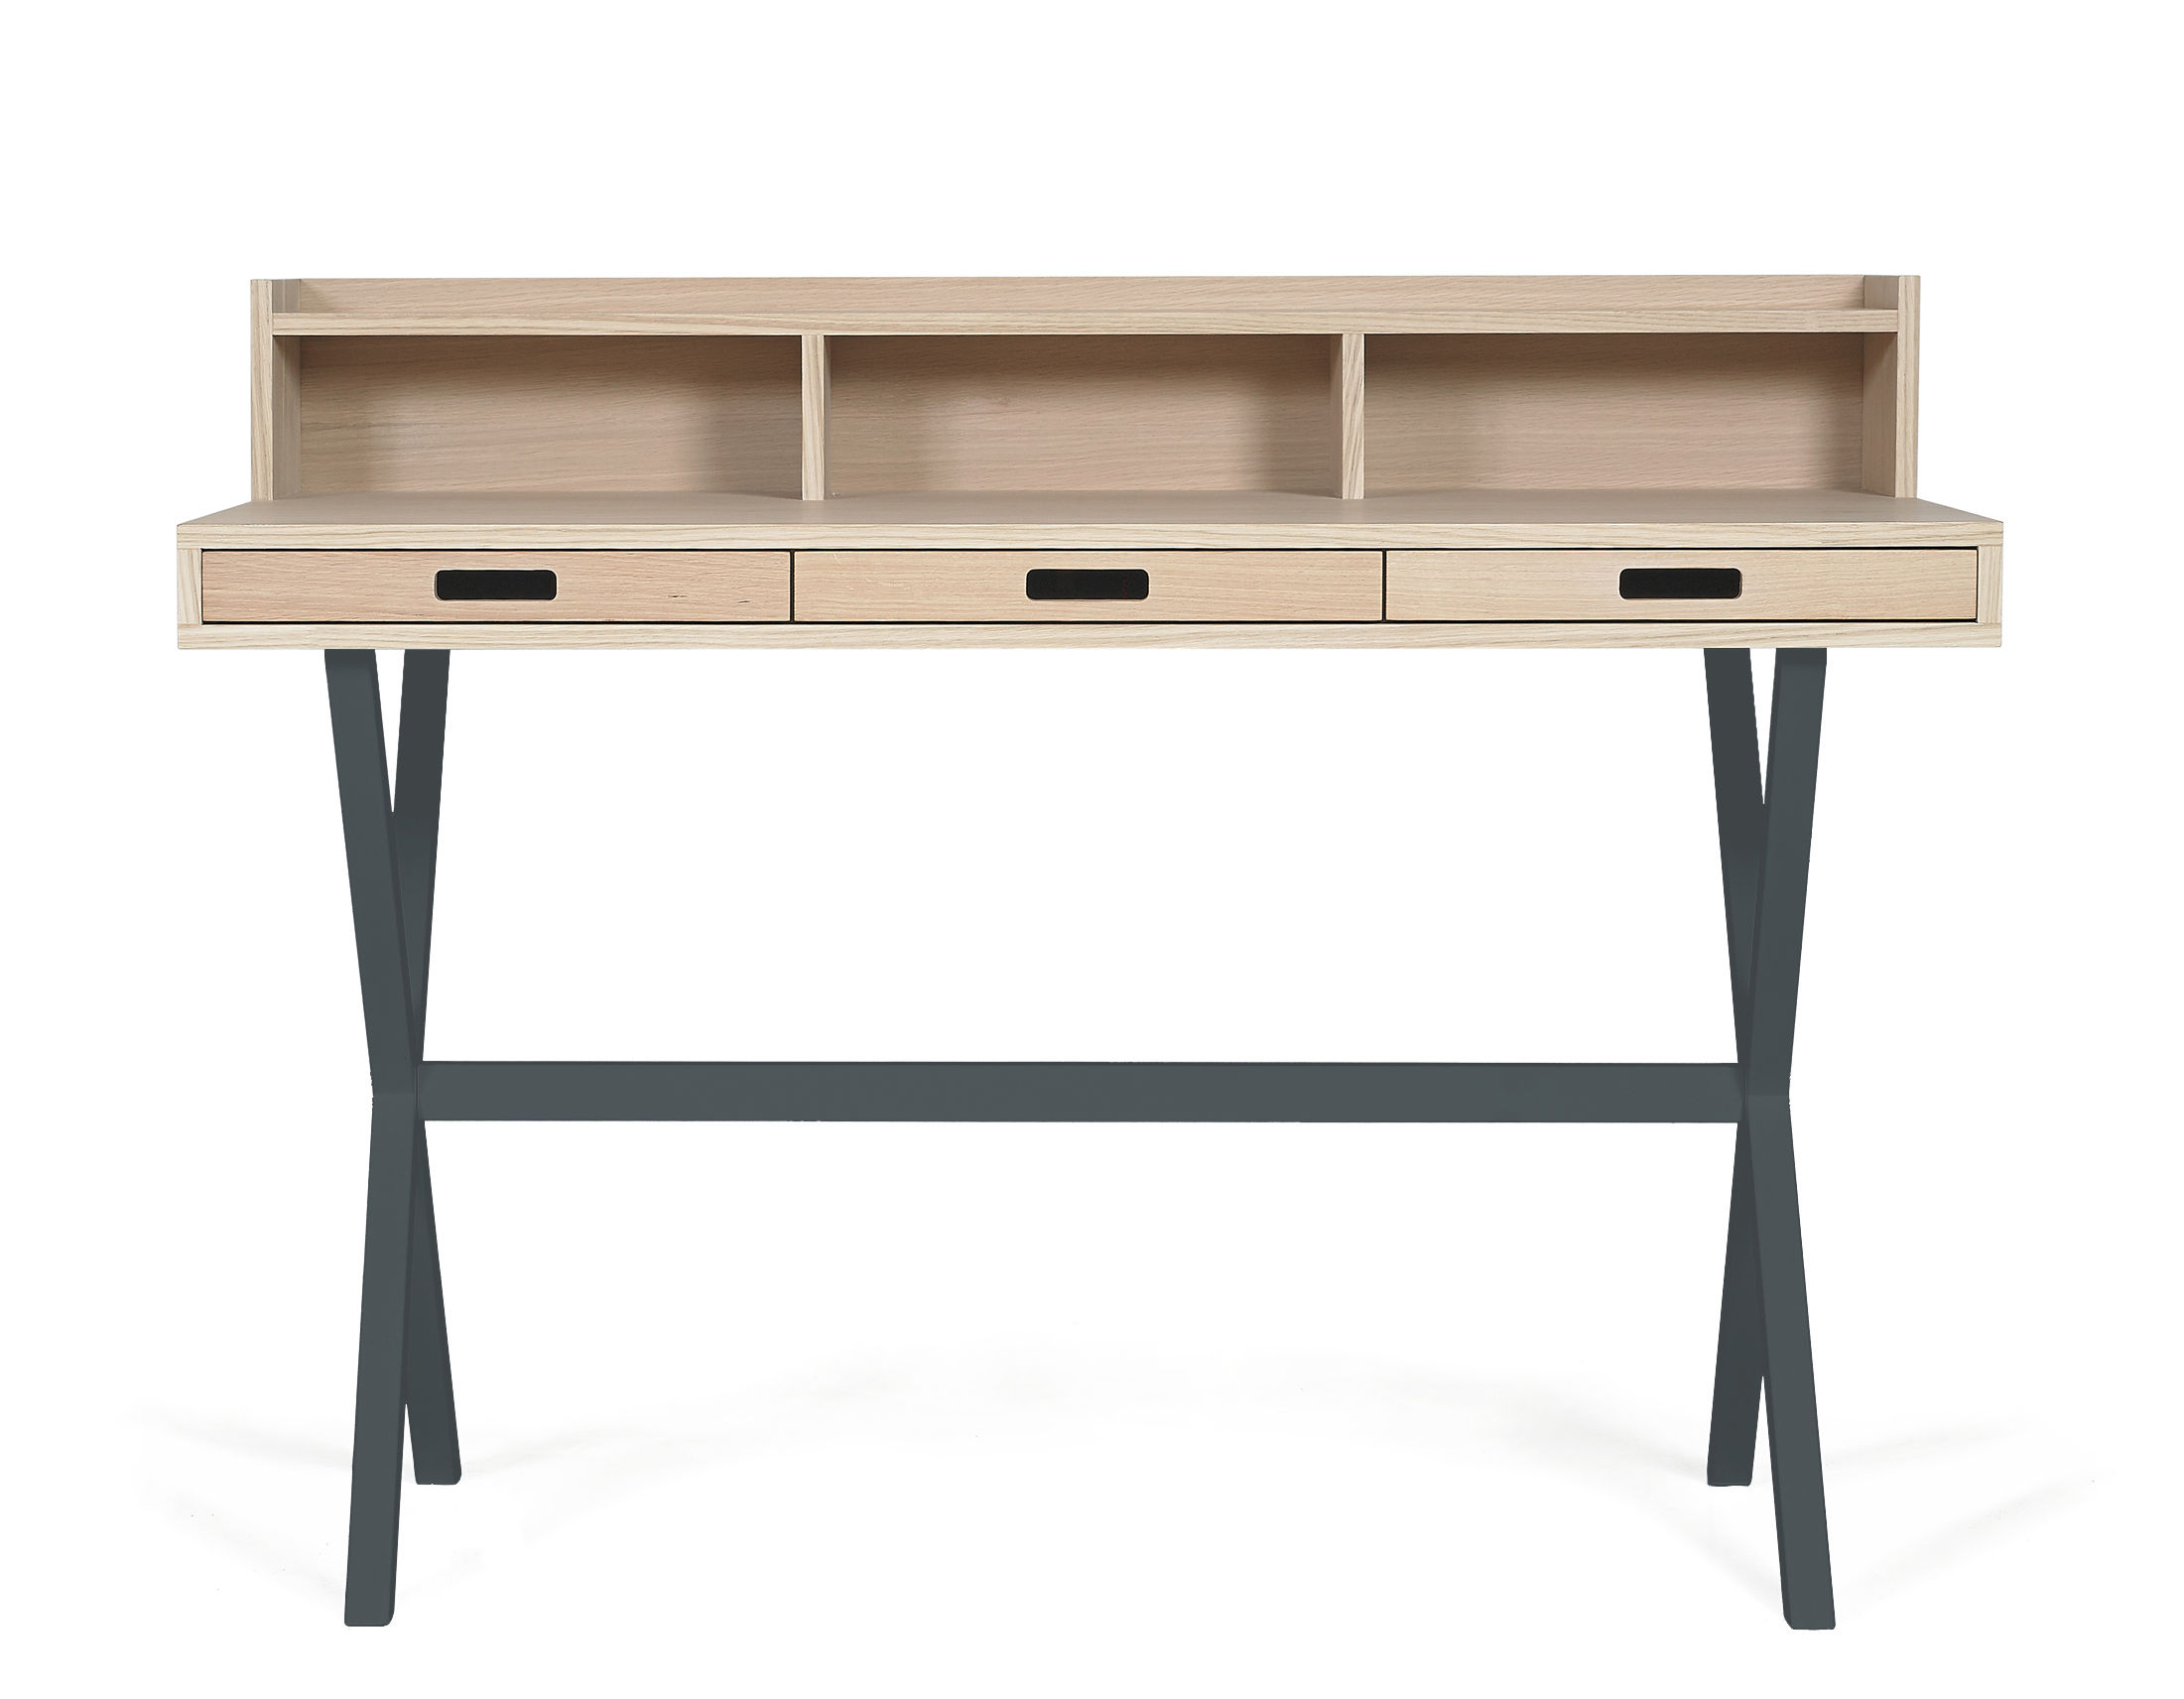 Furniture - Office Furniture - Hyppolite Writing desk by Hartô - Dark grey - Lacquered metal, MDF veneer oak